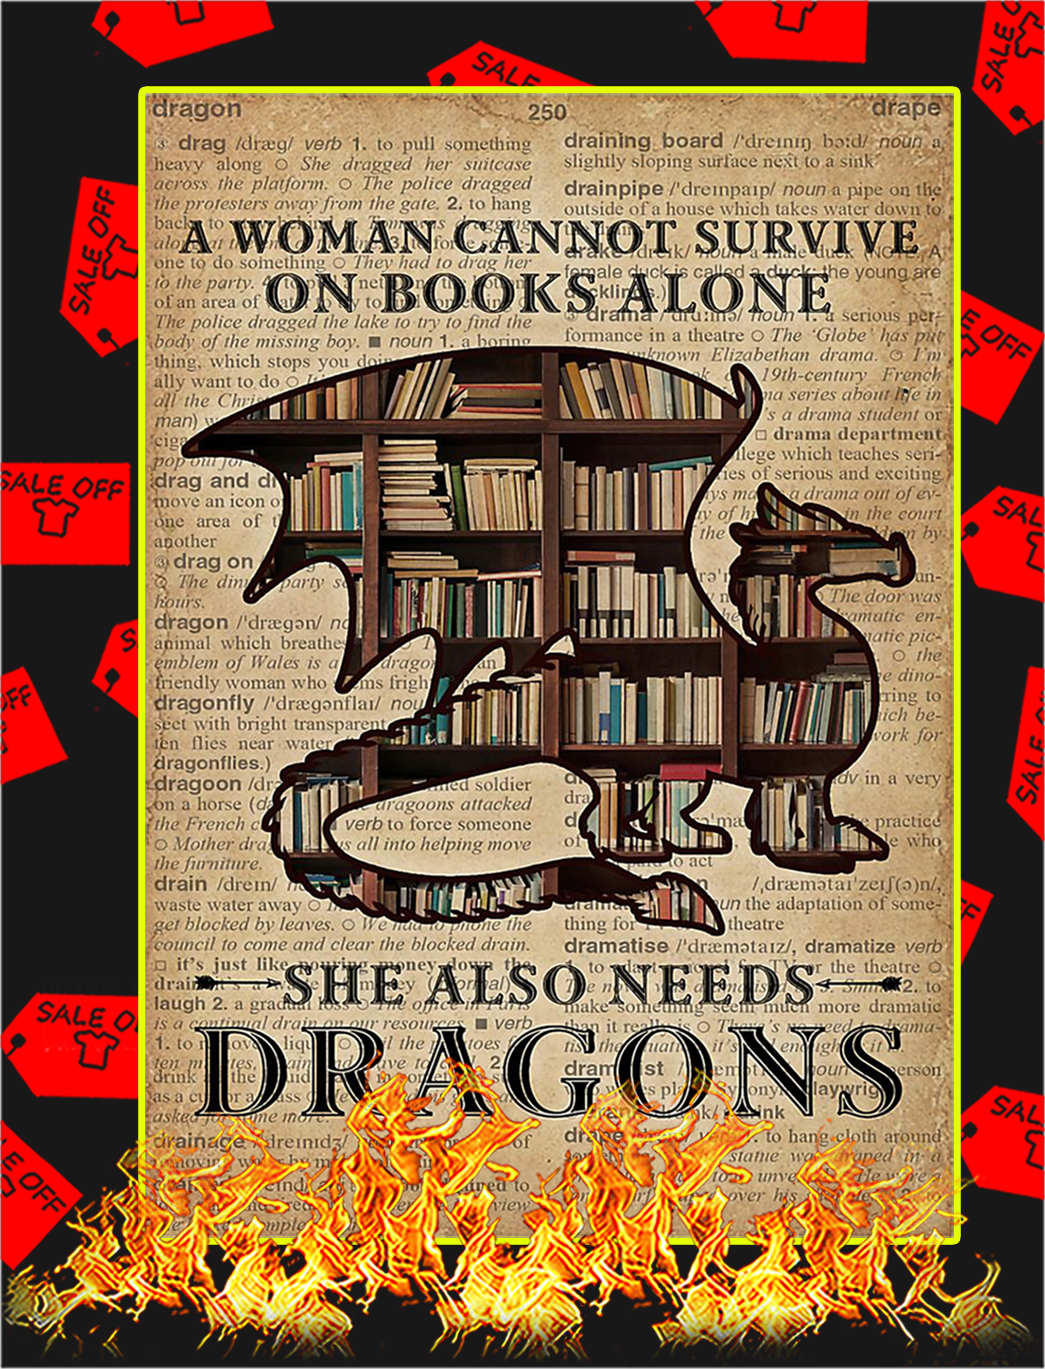 A woman cannot survive on books alone she also needs dragons poster - A1